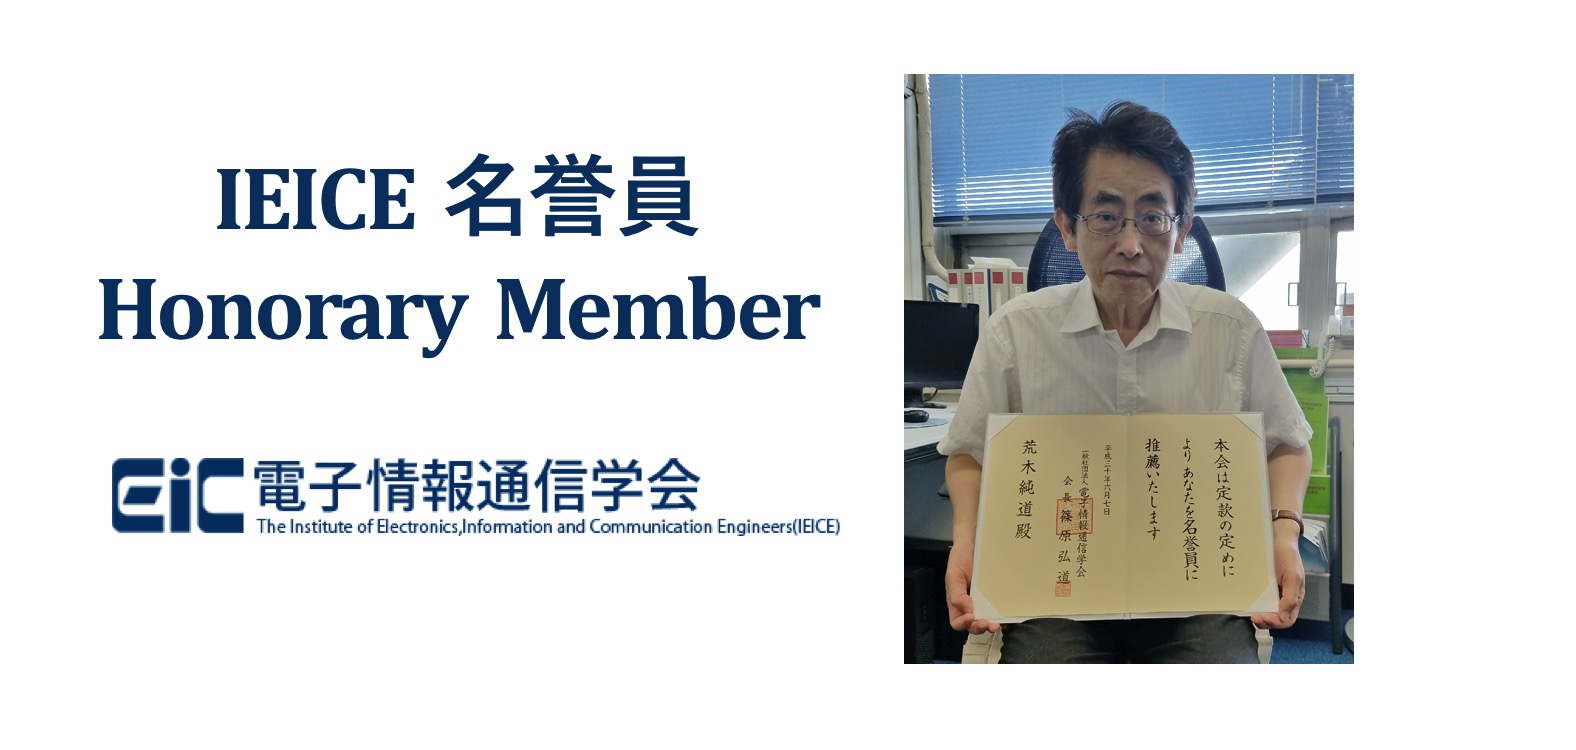 Prof. Araki was awarded the title of Honorary Member of IEICE